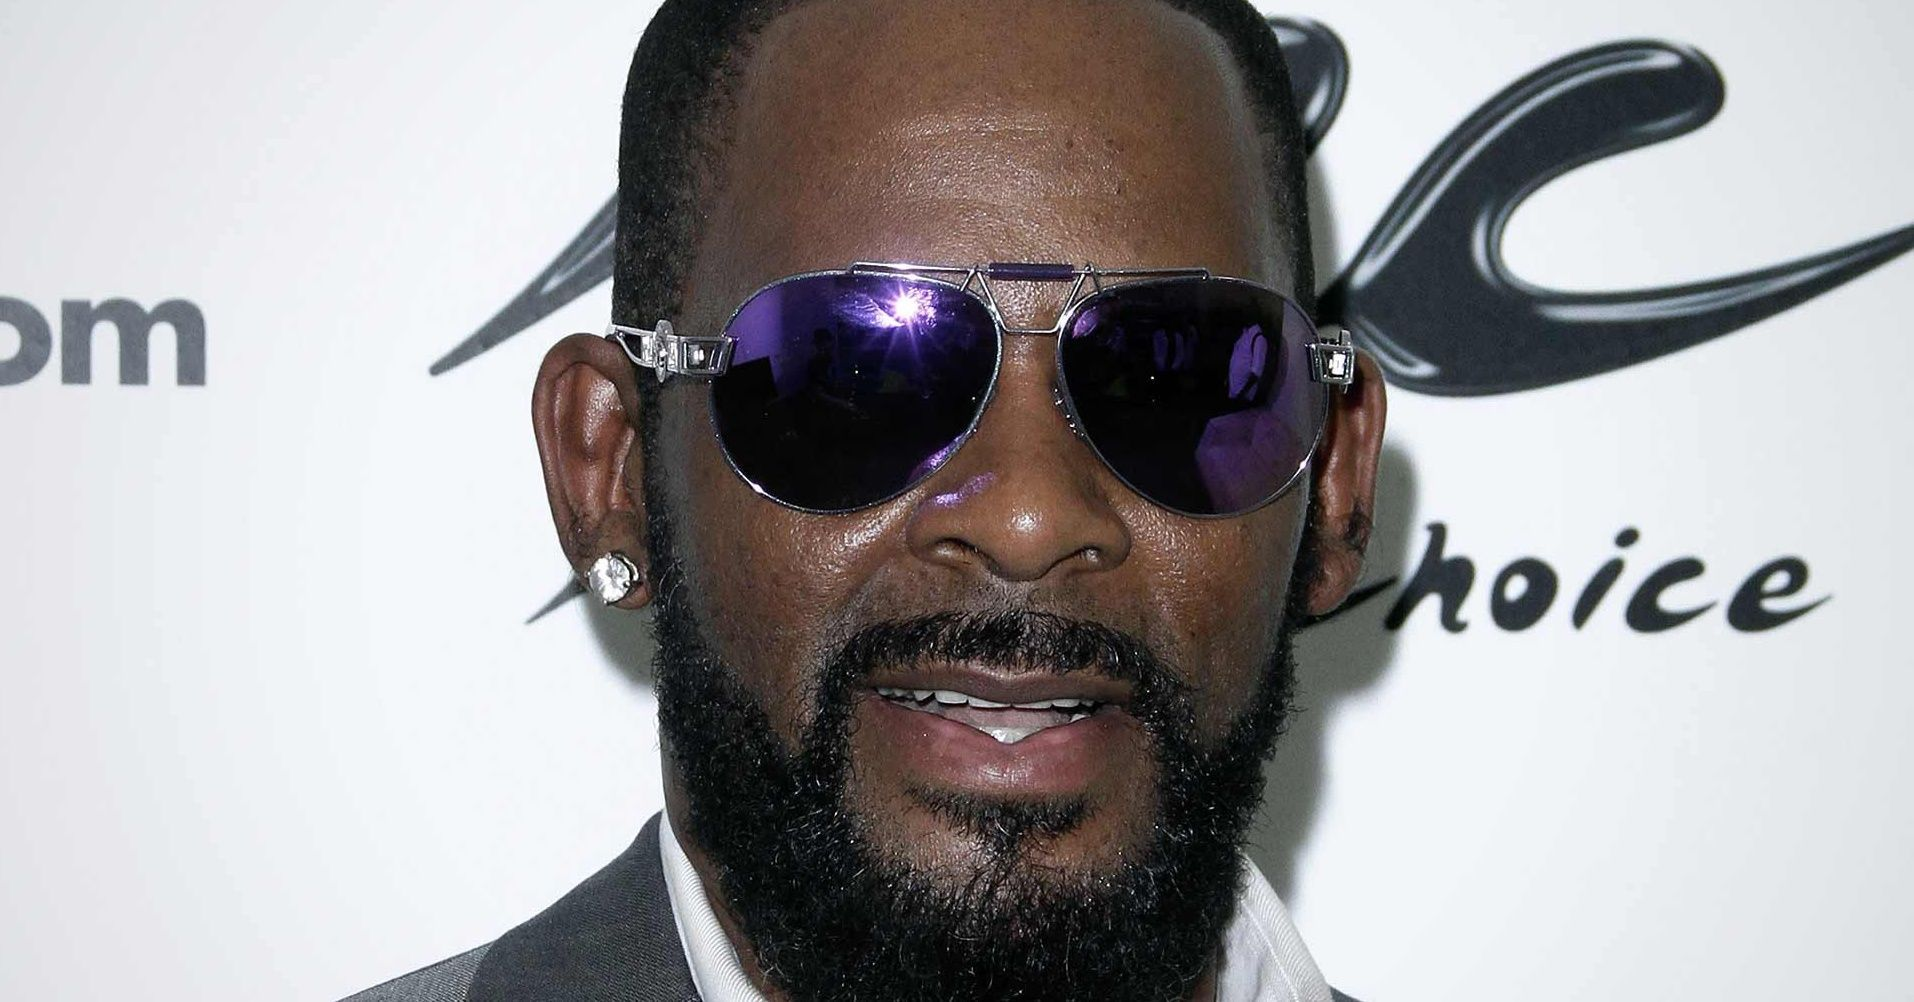 Lawsuit Alleges Mississippi Deprives >> R Kelly Headed To Trial With Mississippi Sheriff Who Sued